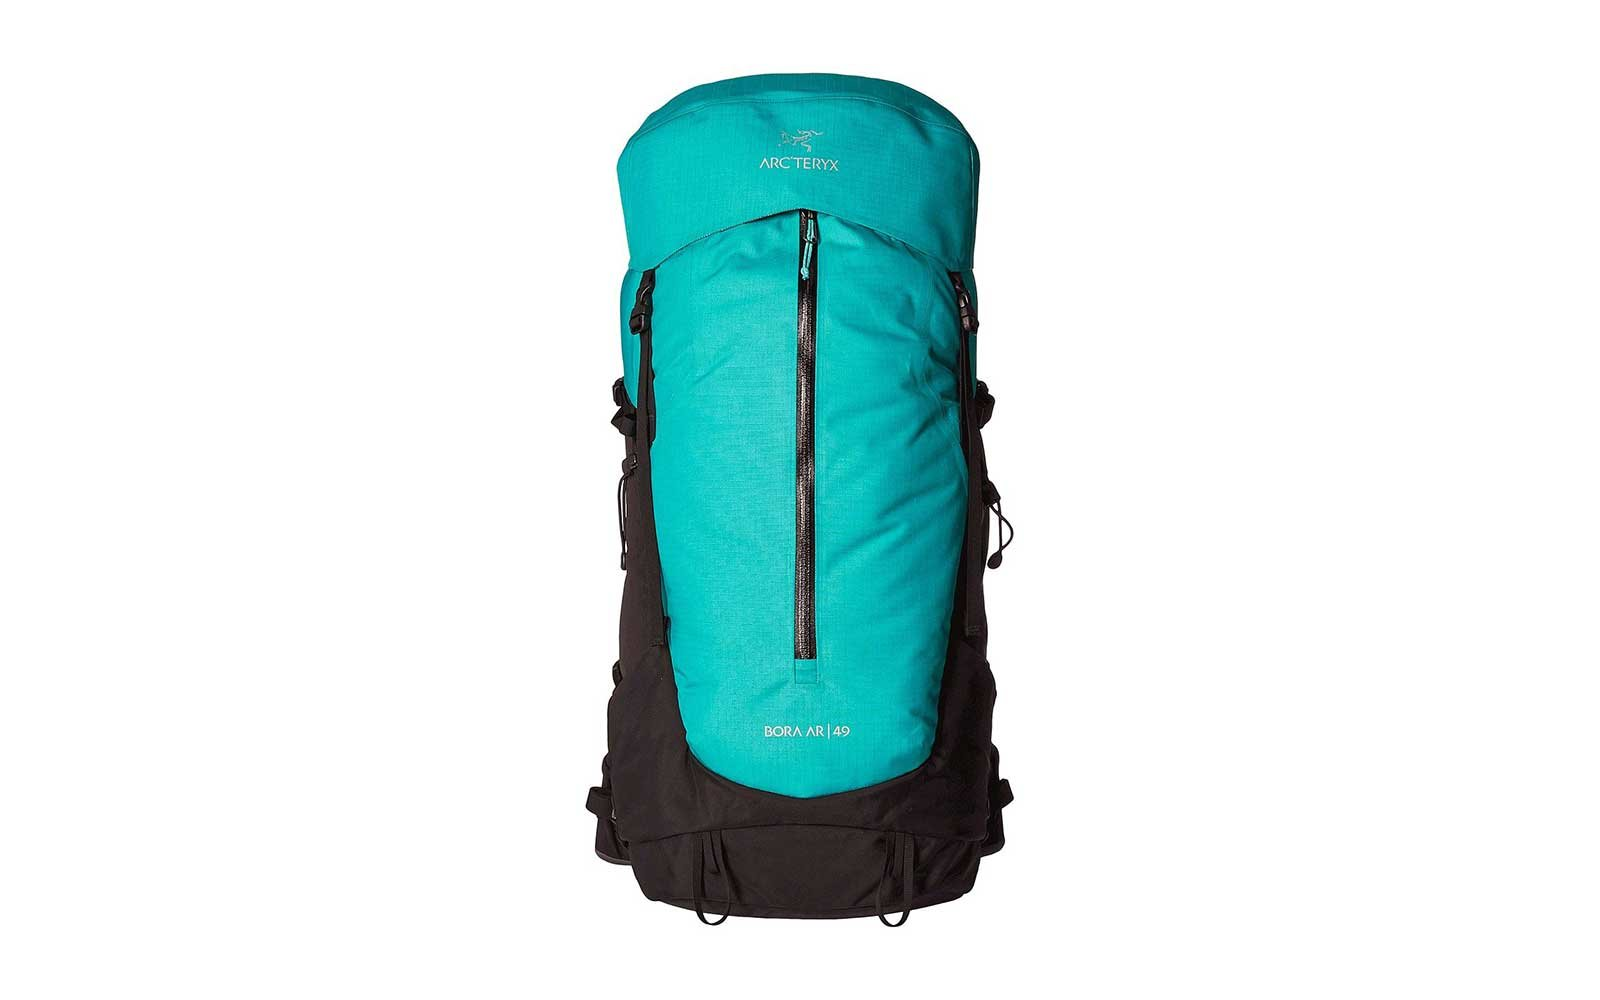 Teal waterproof backpack from Arcteryx